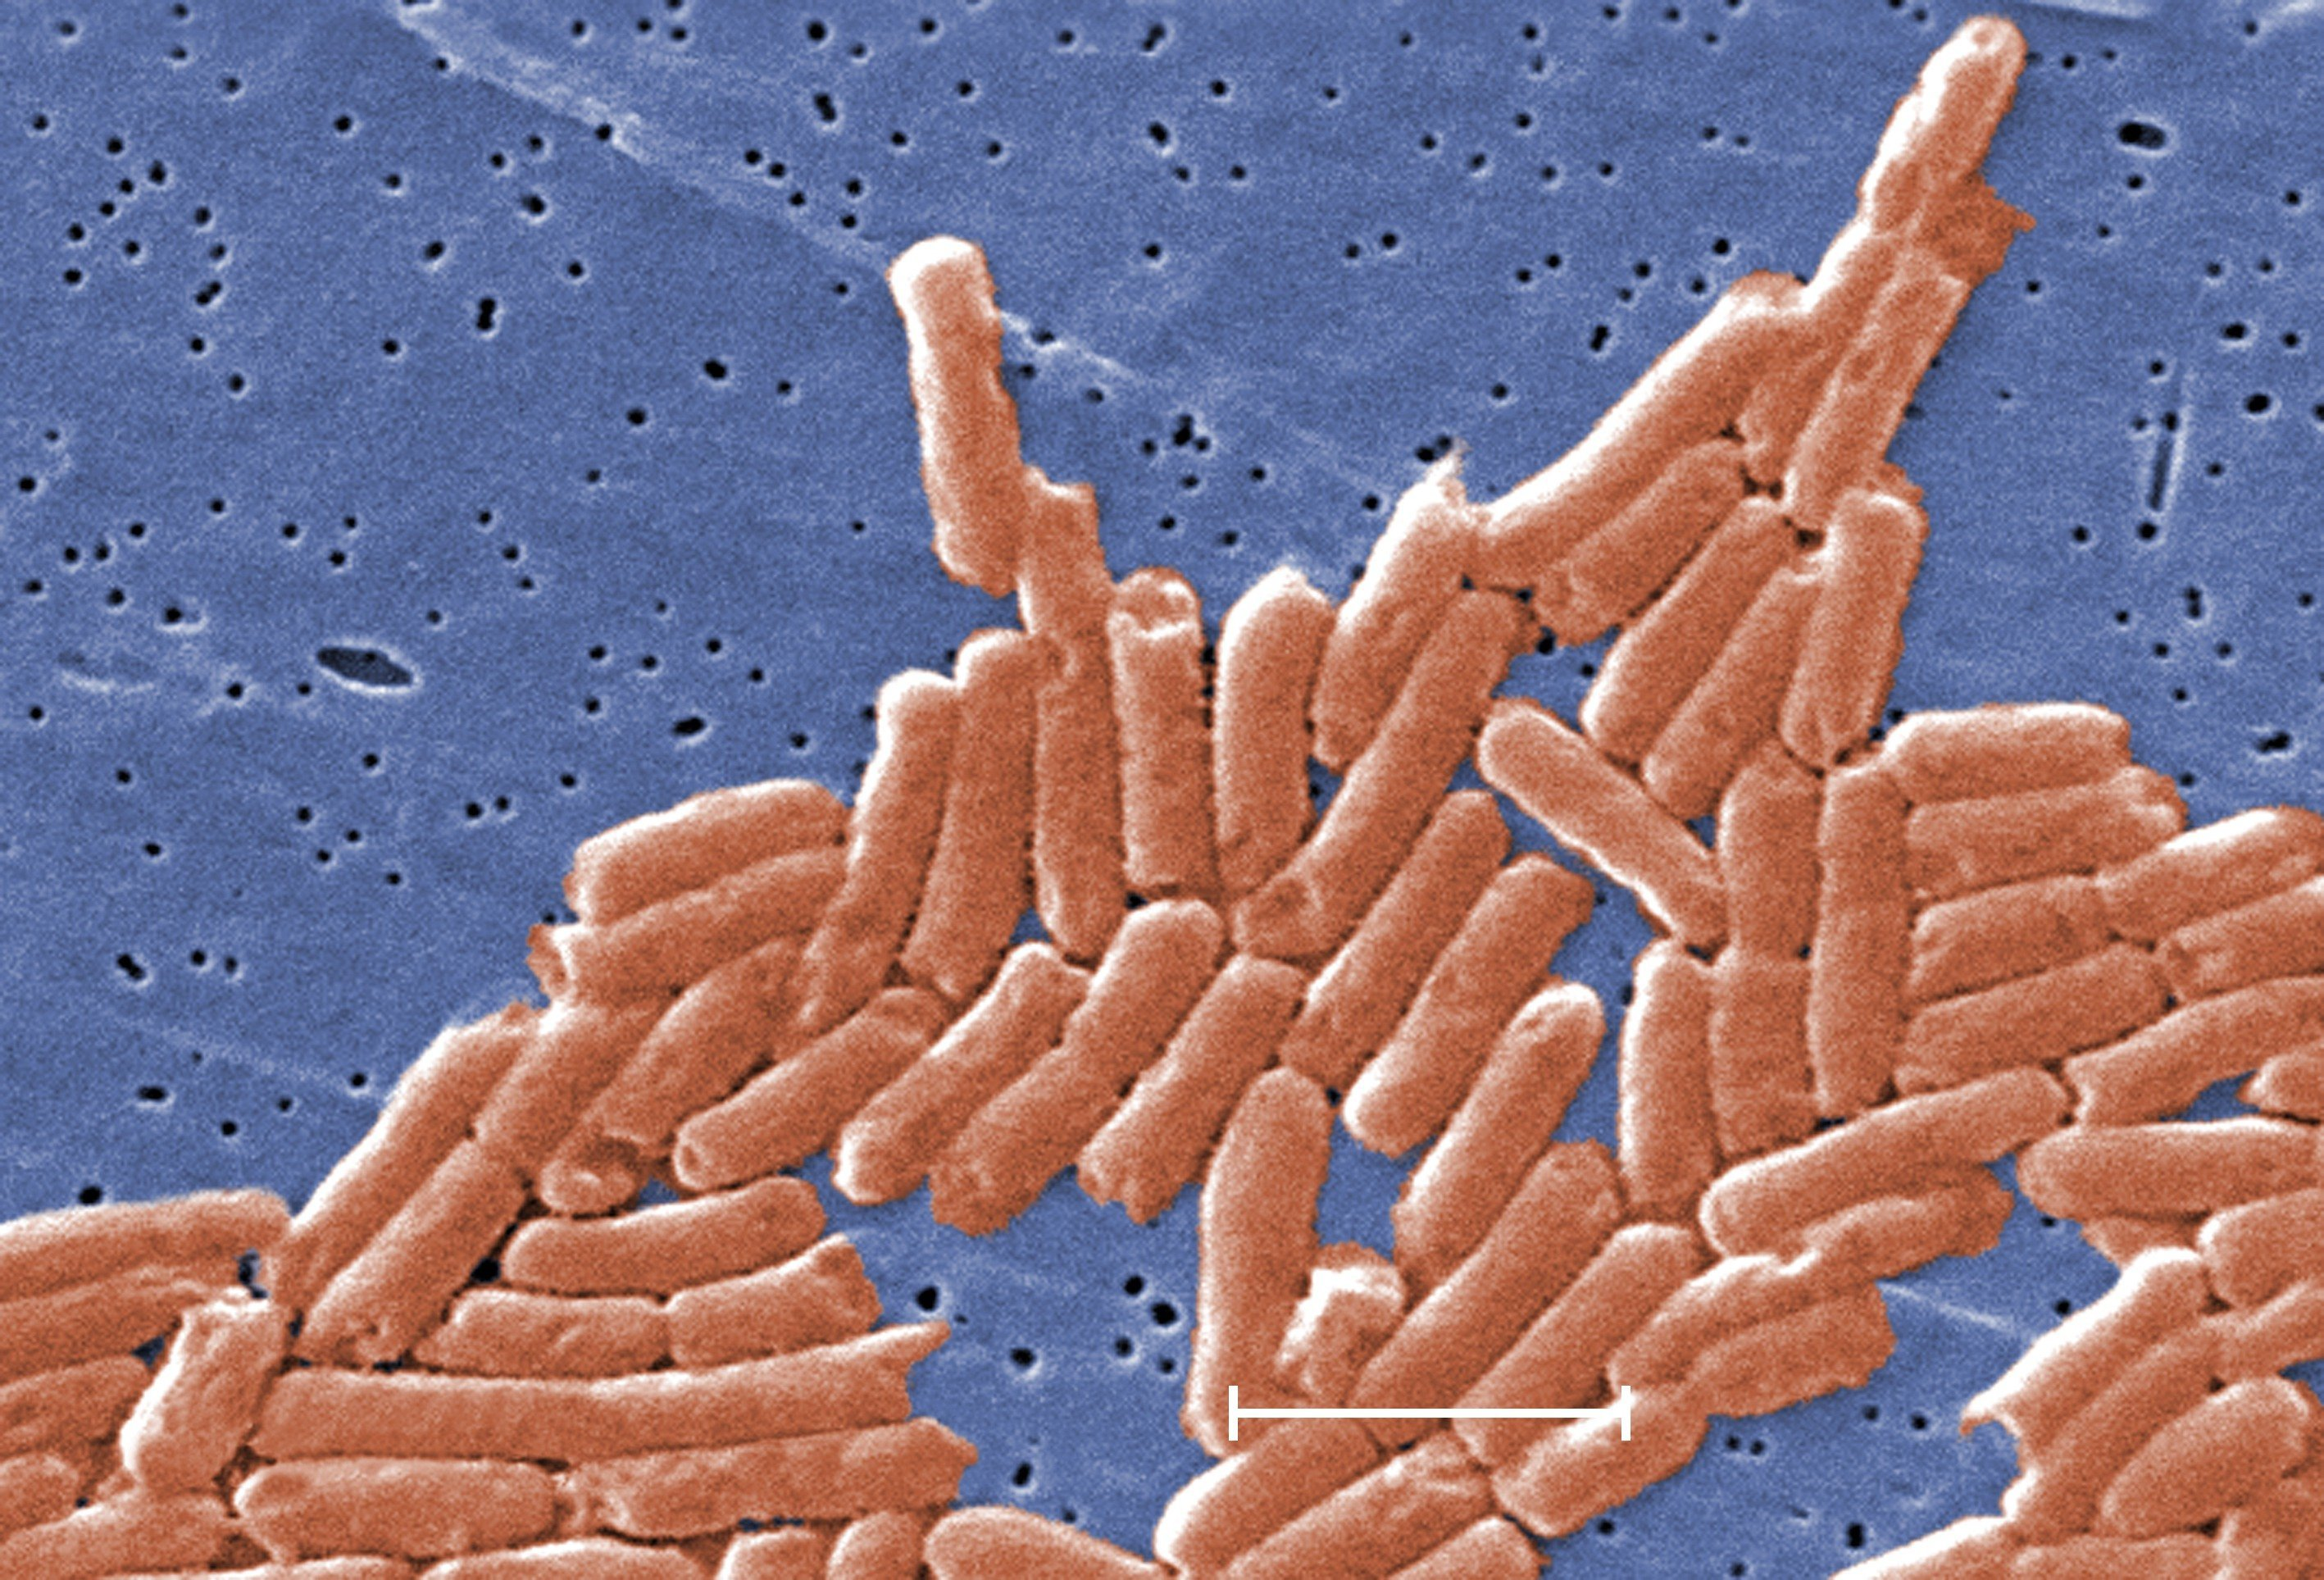 CDC sounds alarm over deadly drug-resistant salmonella